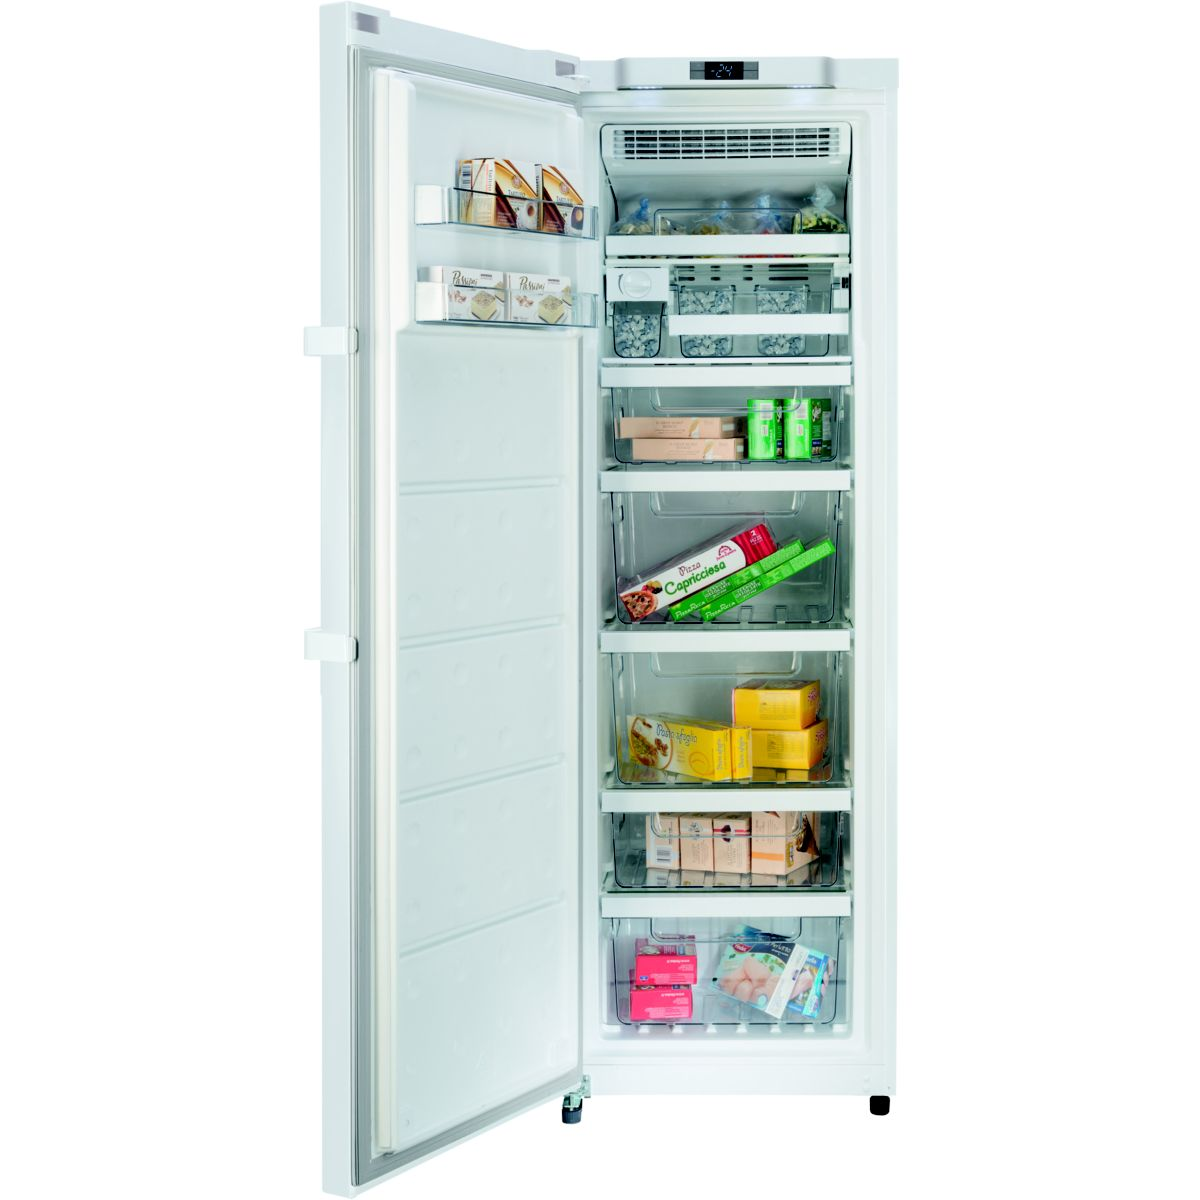 Hotpoint upah 1831 f cong lateur armoire 260 litres comparer avec tousles - Congelateur armoire hotpoint ...